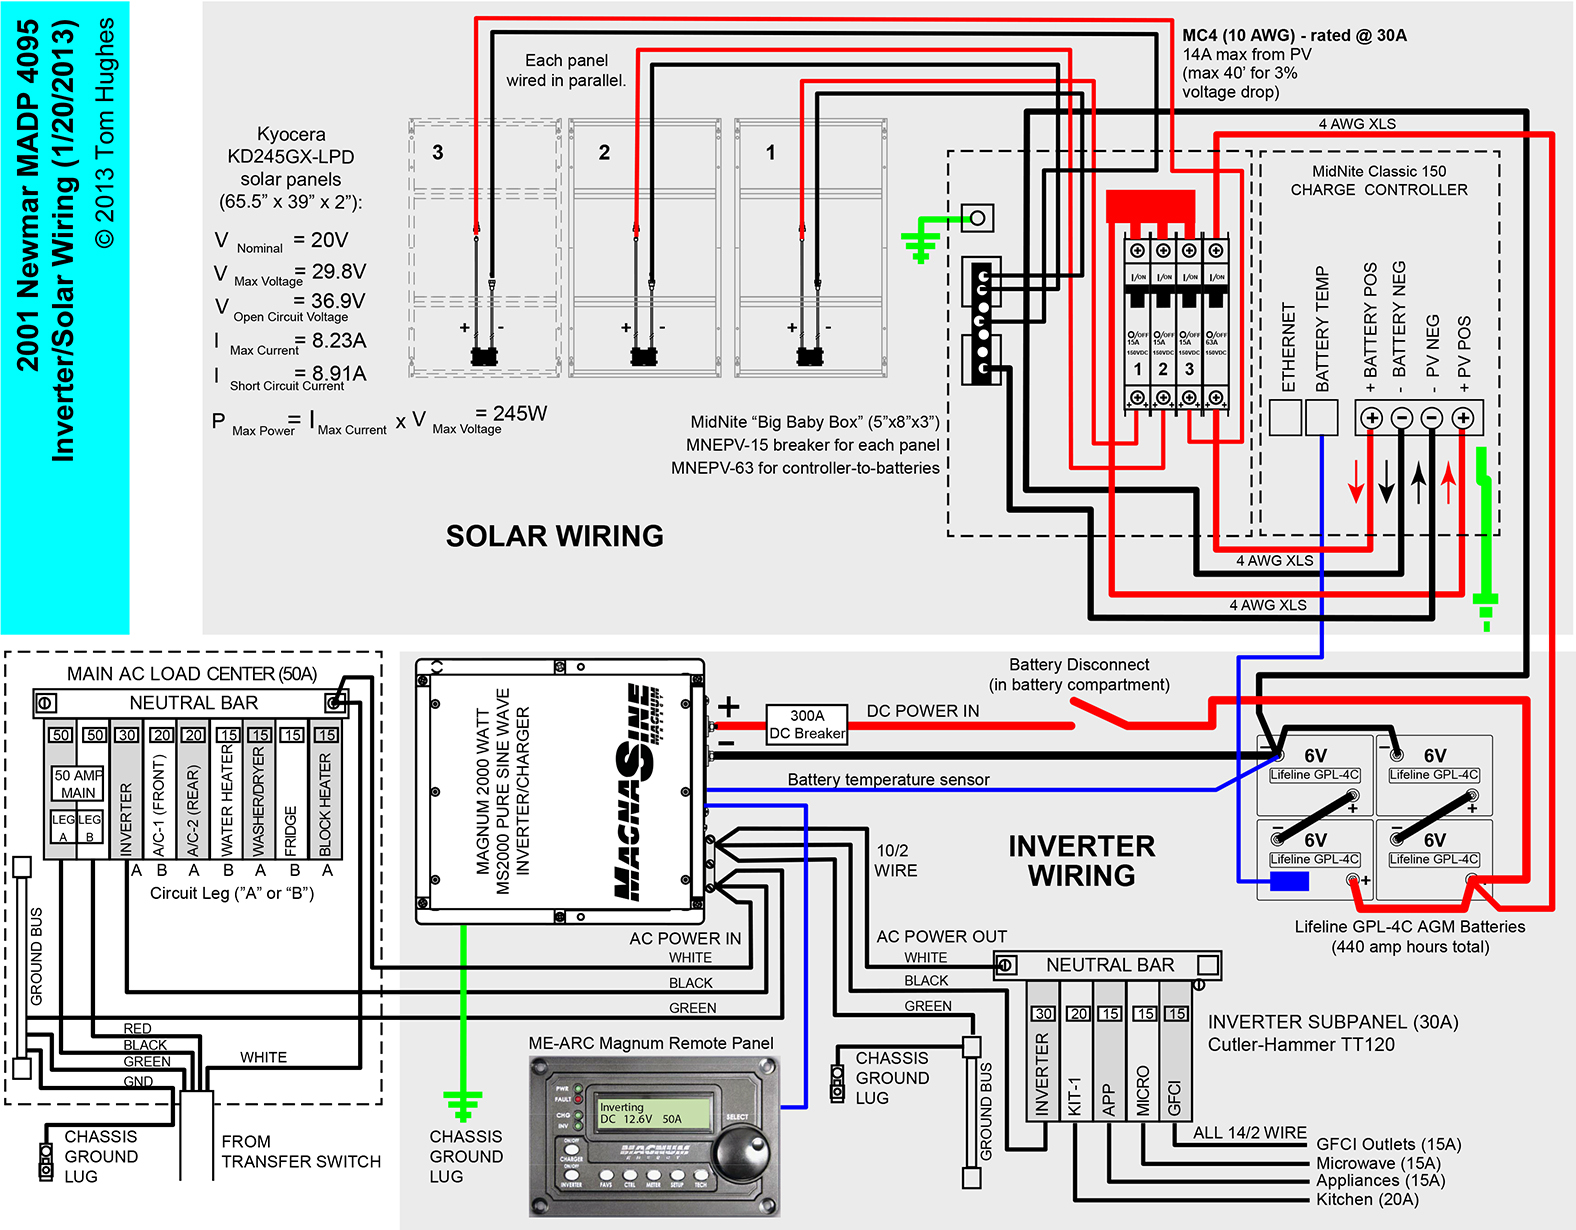 ms2000_newmar_inverter_wiring_01_20_2013 rv inverter diagram rv inverter transfer switch \u2022 wiring diagrams  at mifinder.co